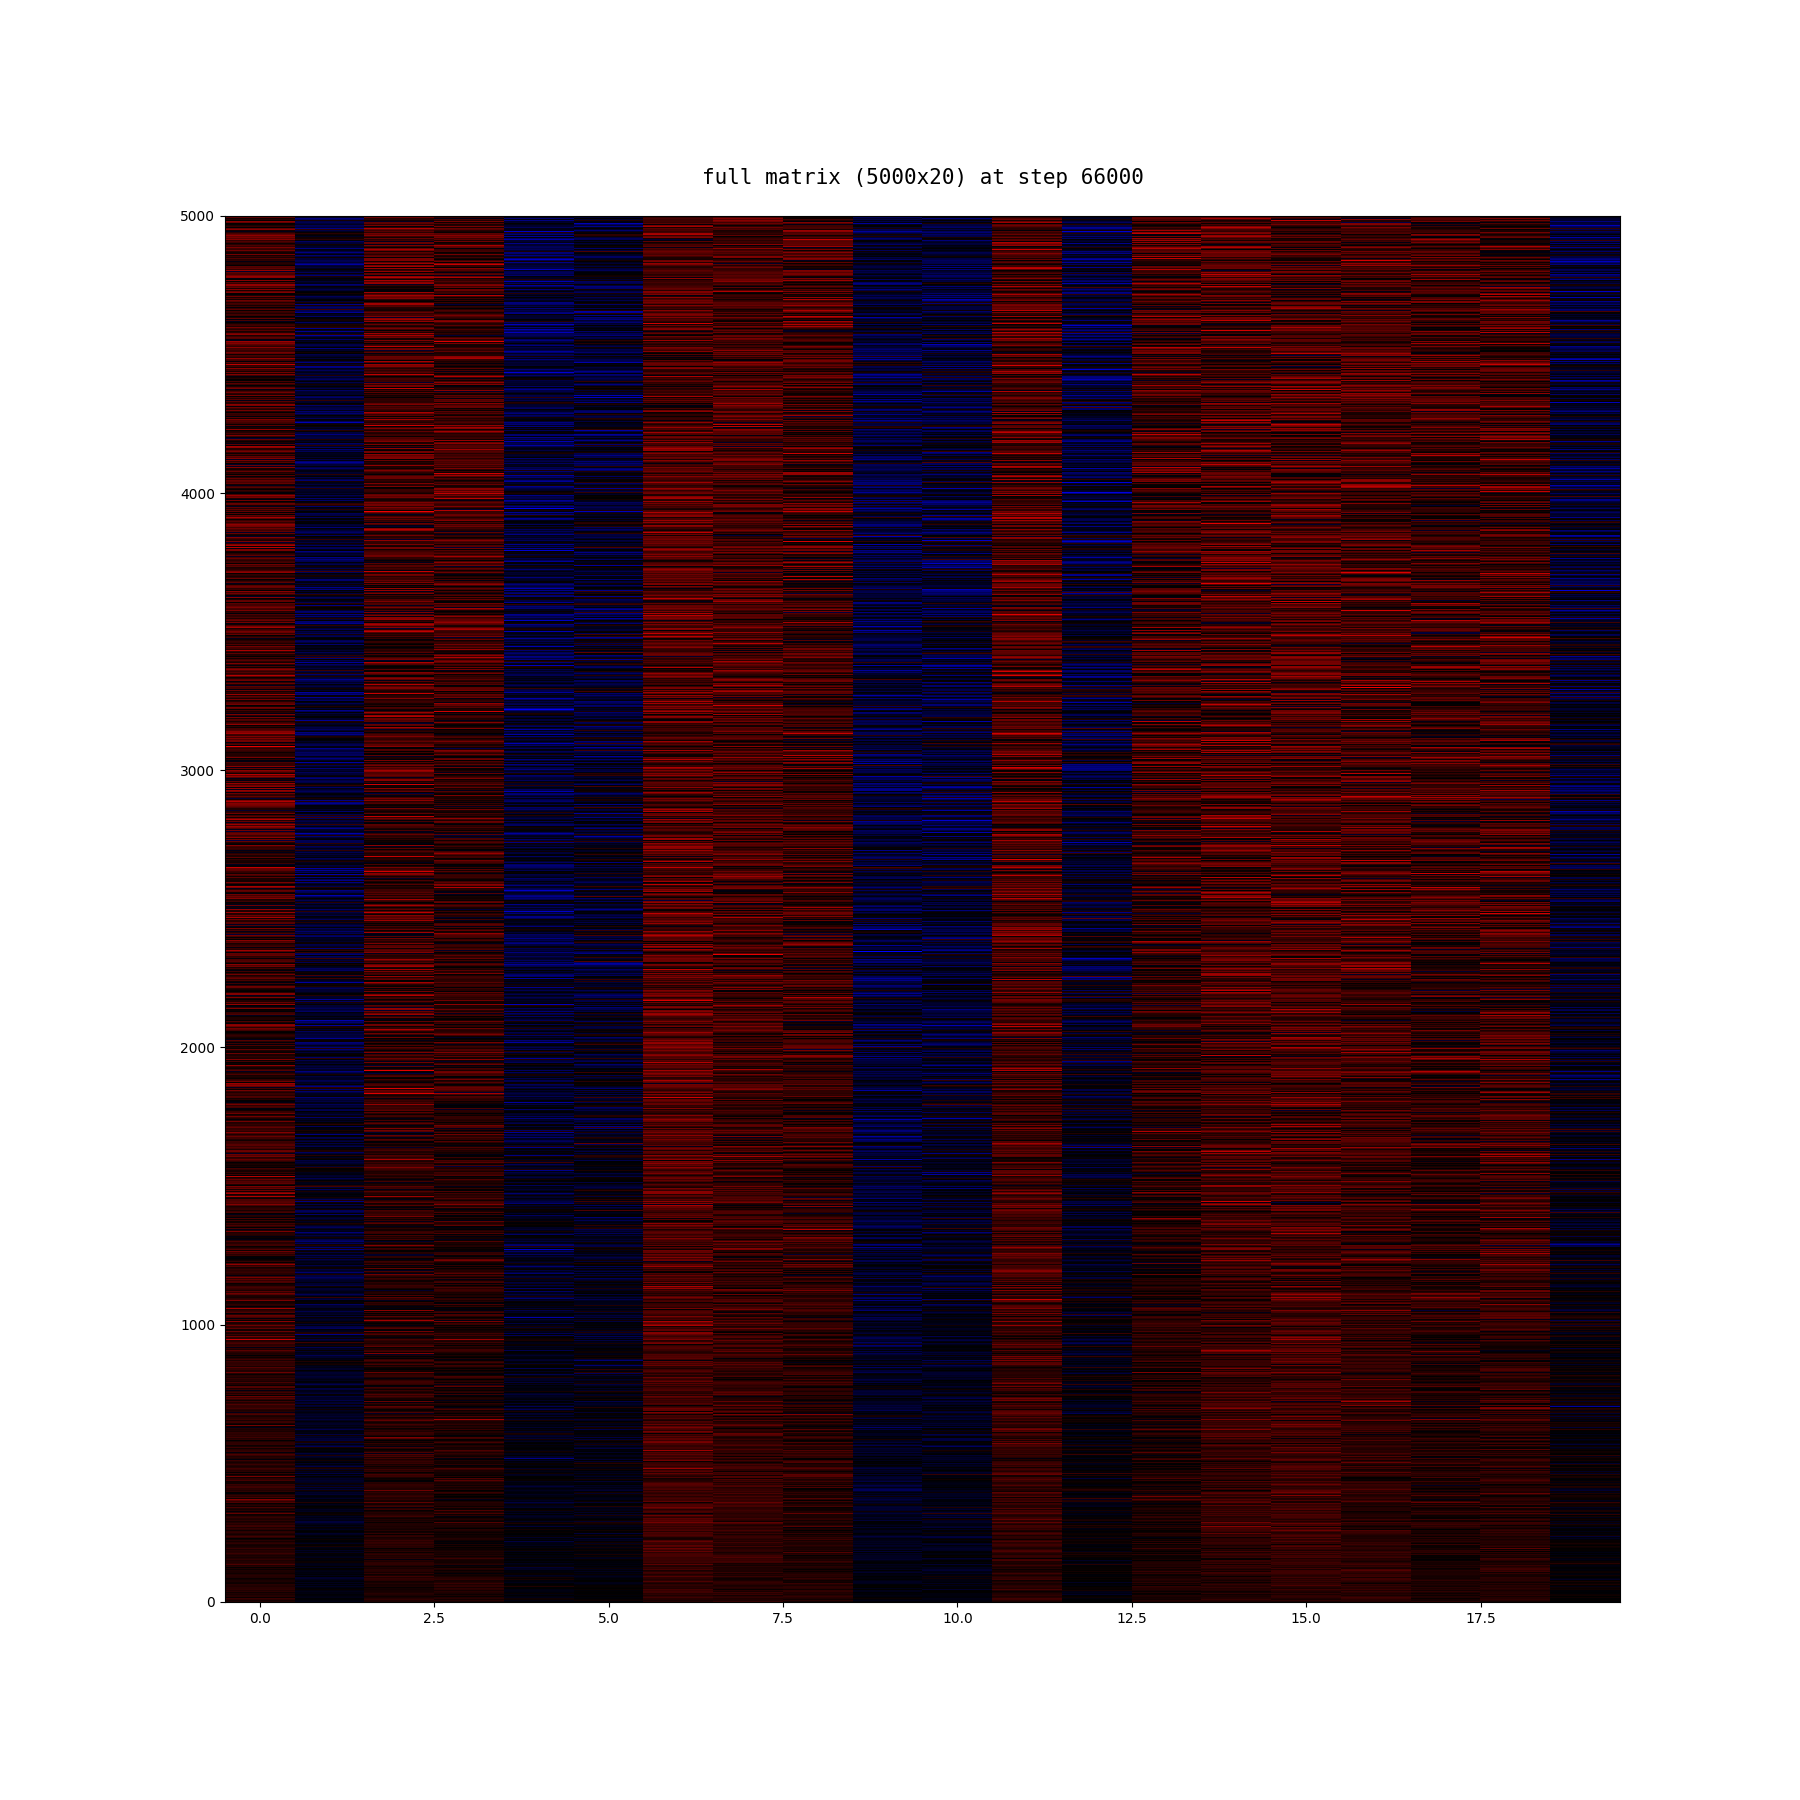 algoliterary_encounter/word2vec/plots/full-matrix/frankenstein-full-matrix-at-step_66000.png